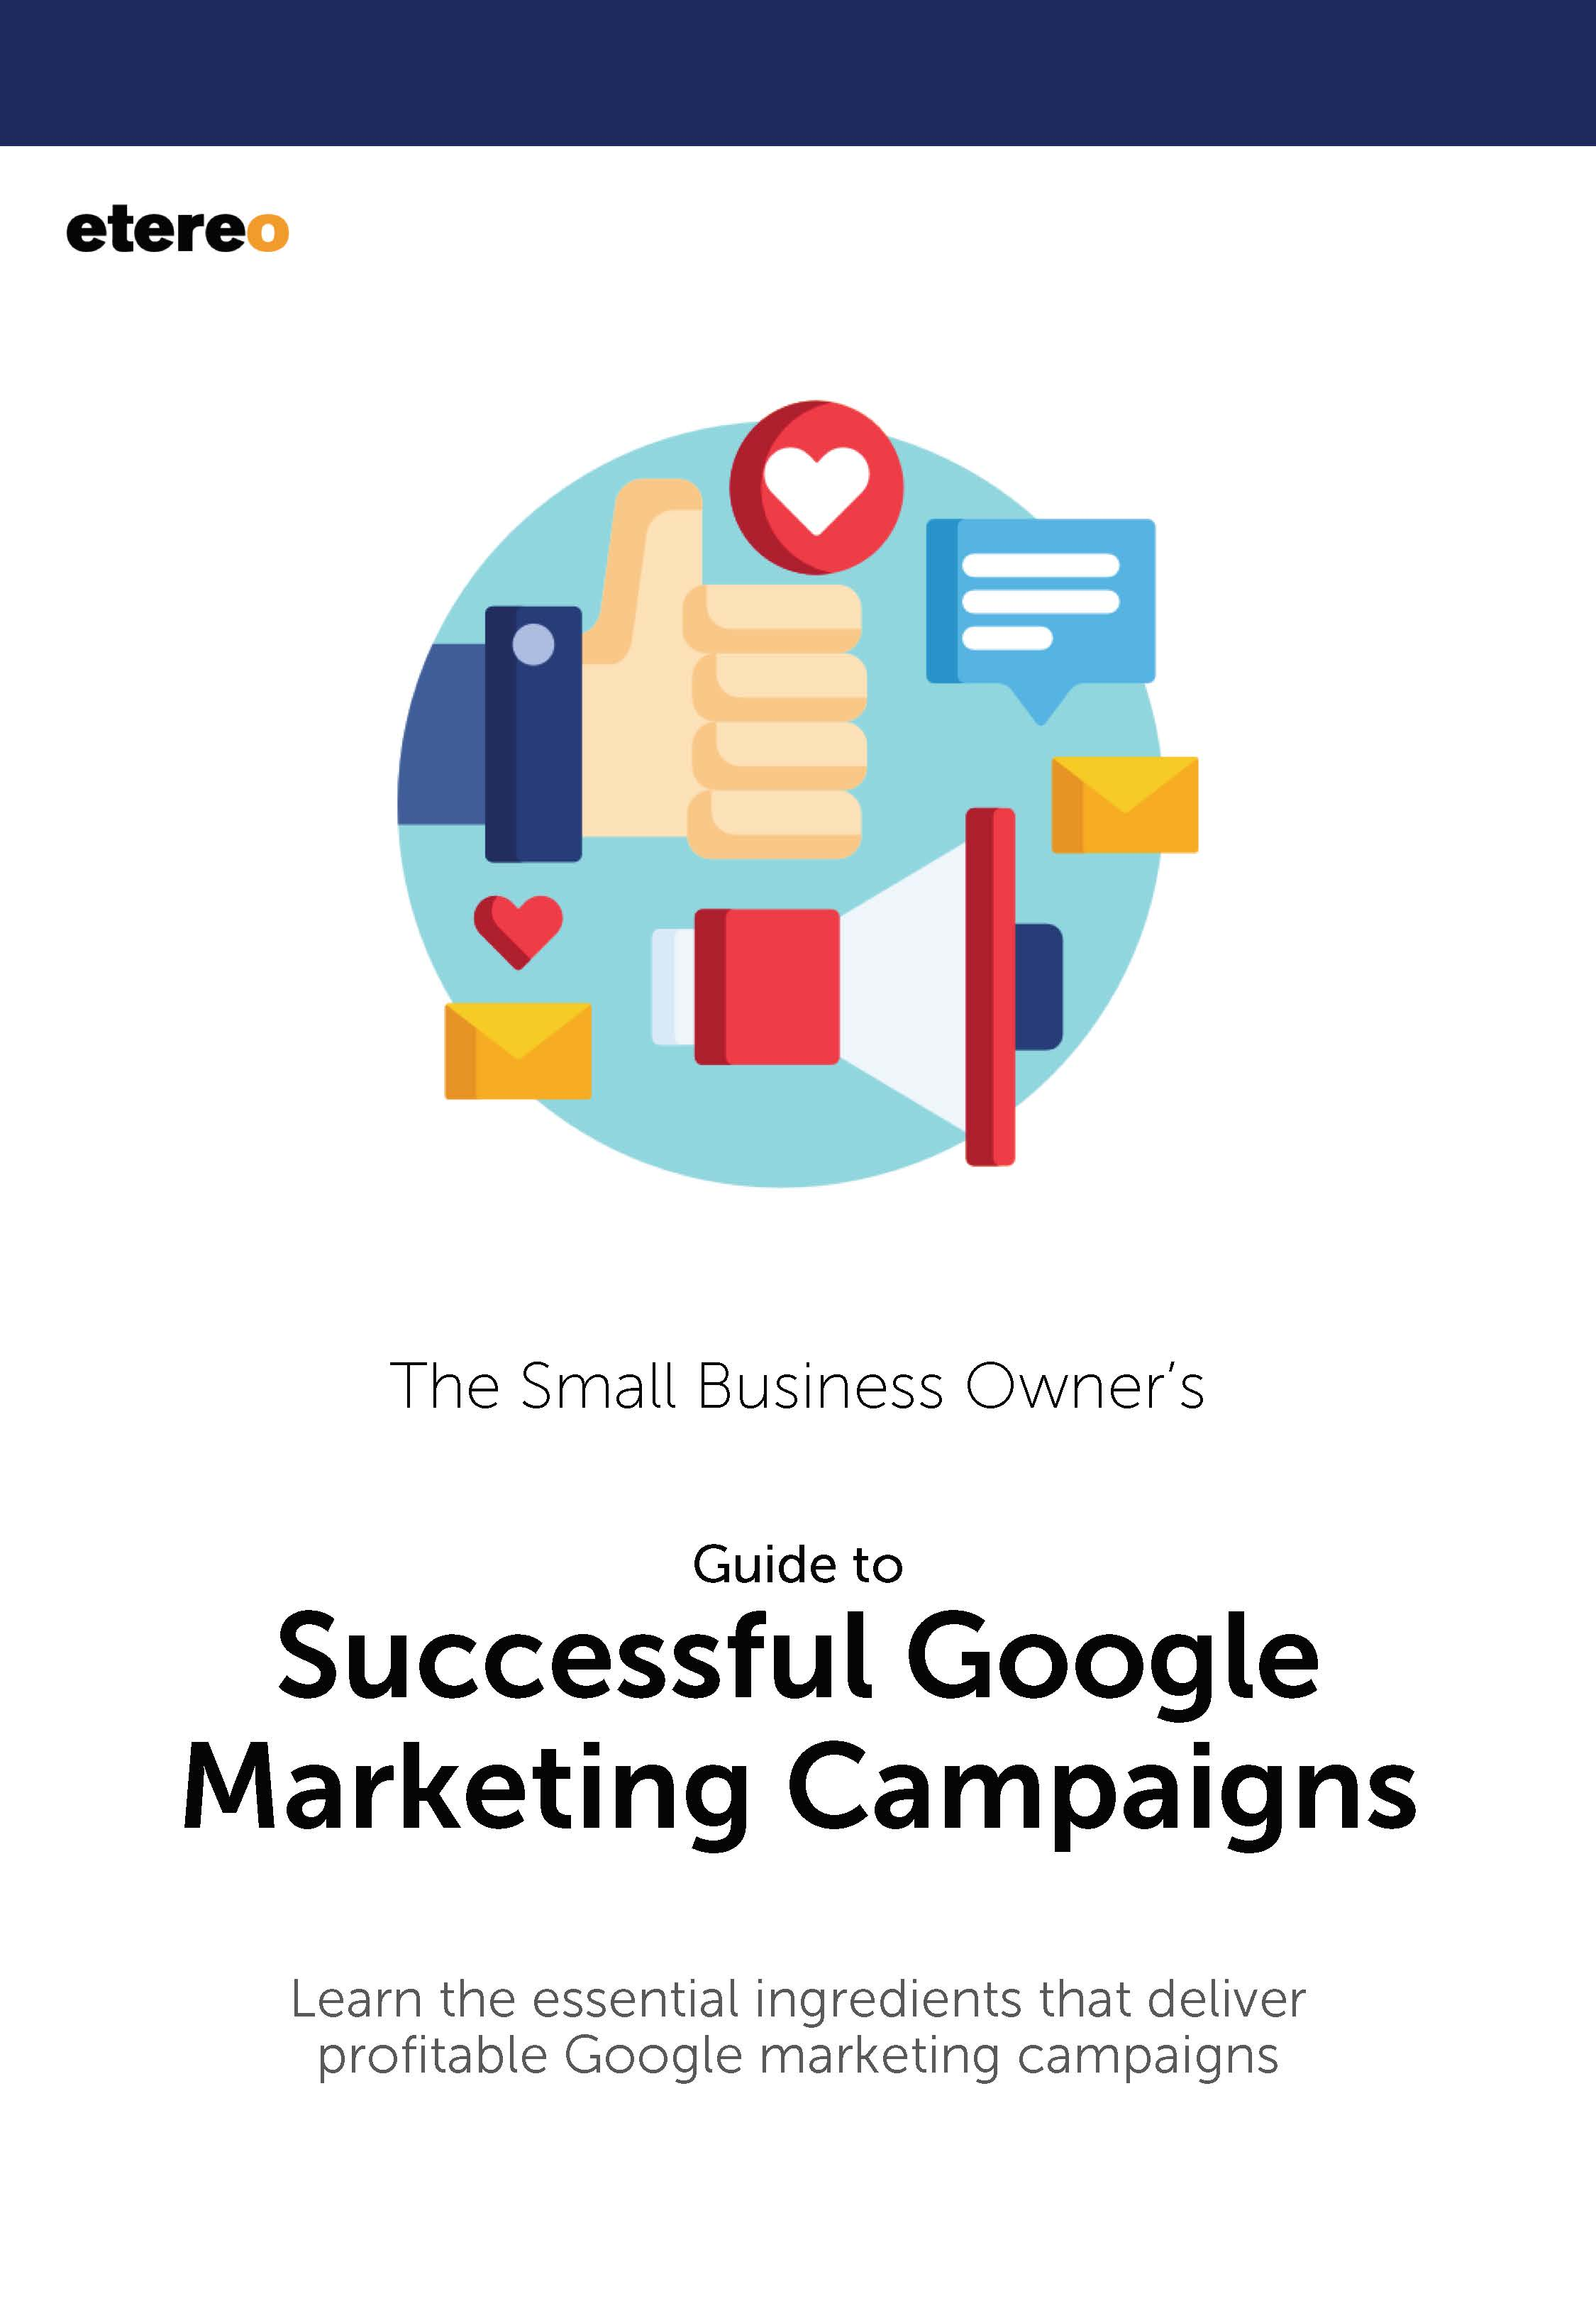 The Guide to Having a Successful Google Marketing Campaign